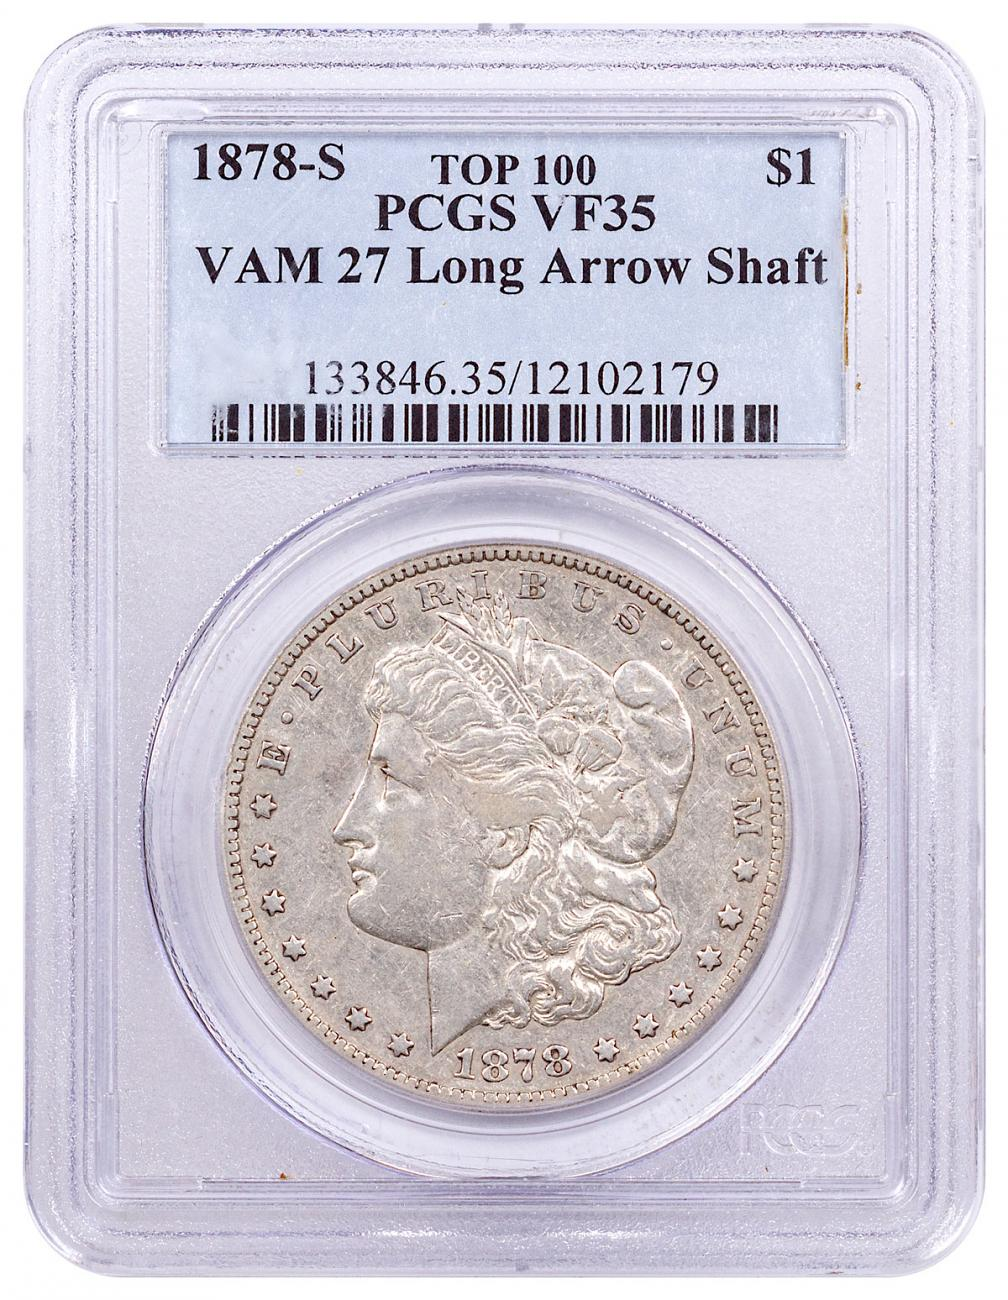 1878-S Morgan Silver Dollar Top 100 PCGS VF35 VAM-27 Long Arrow Shaft